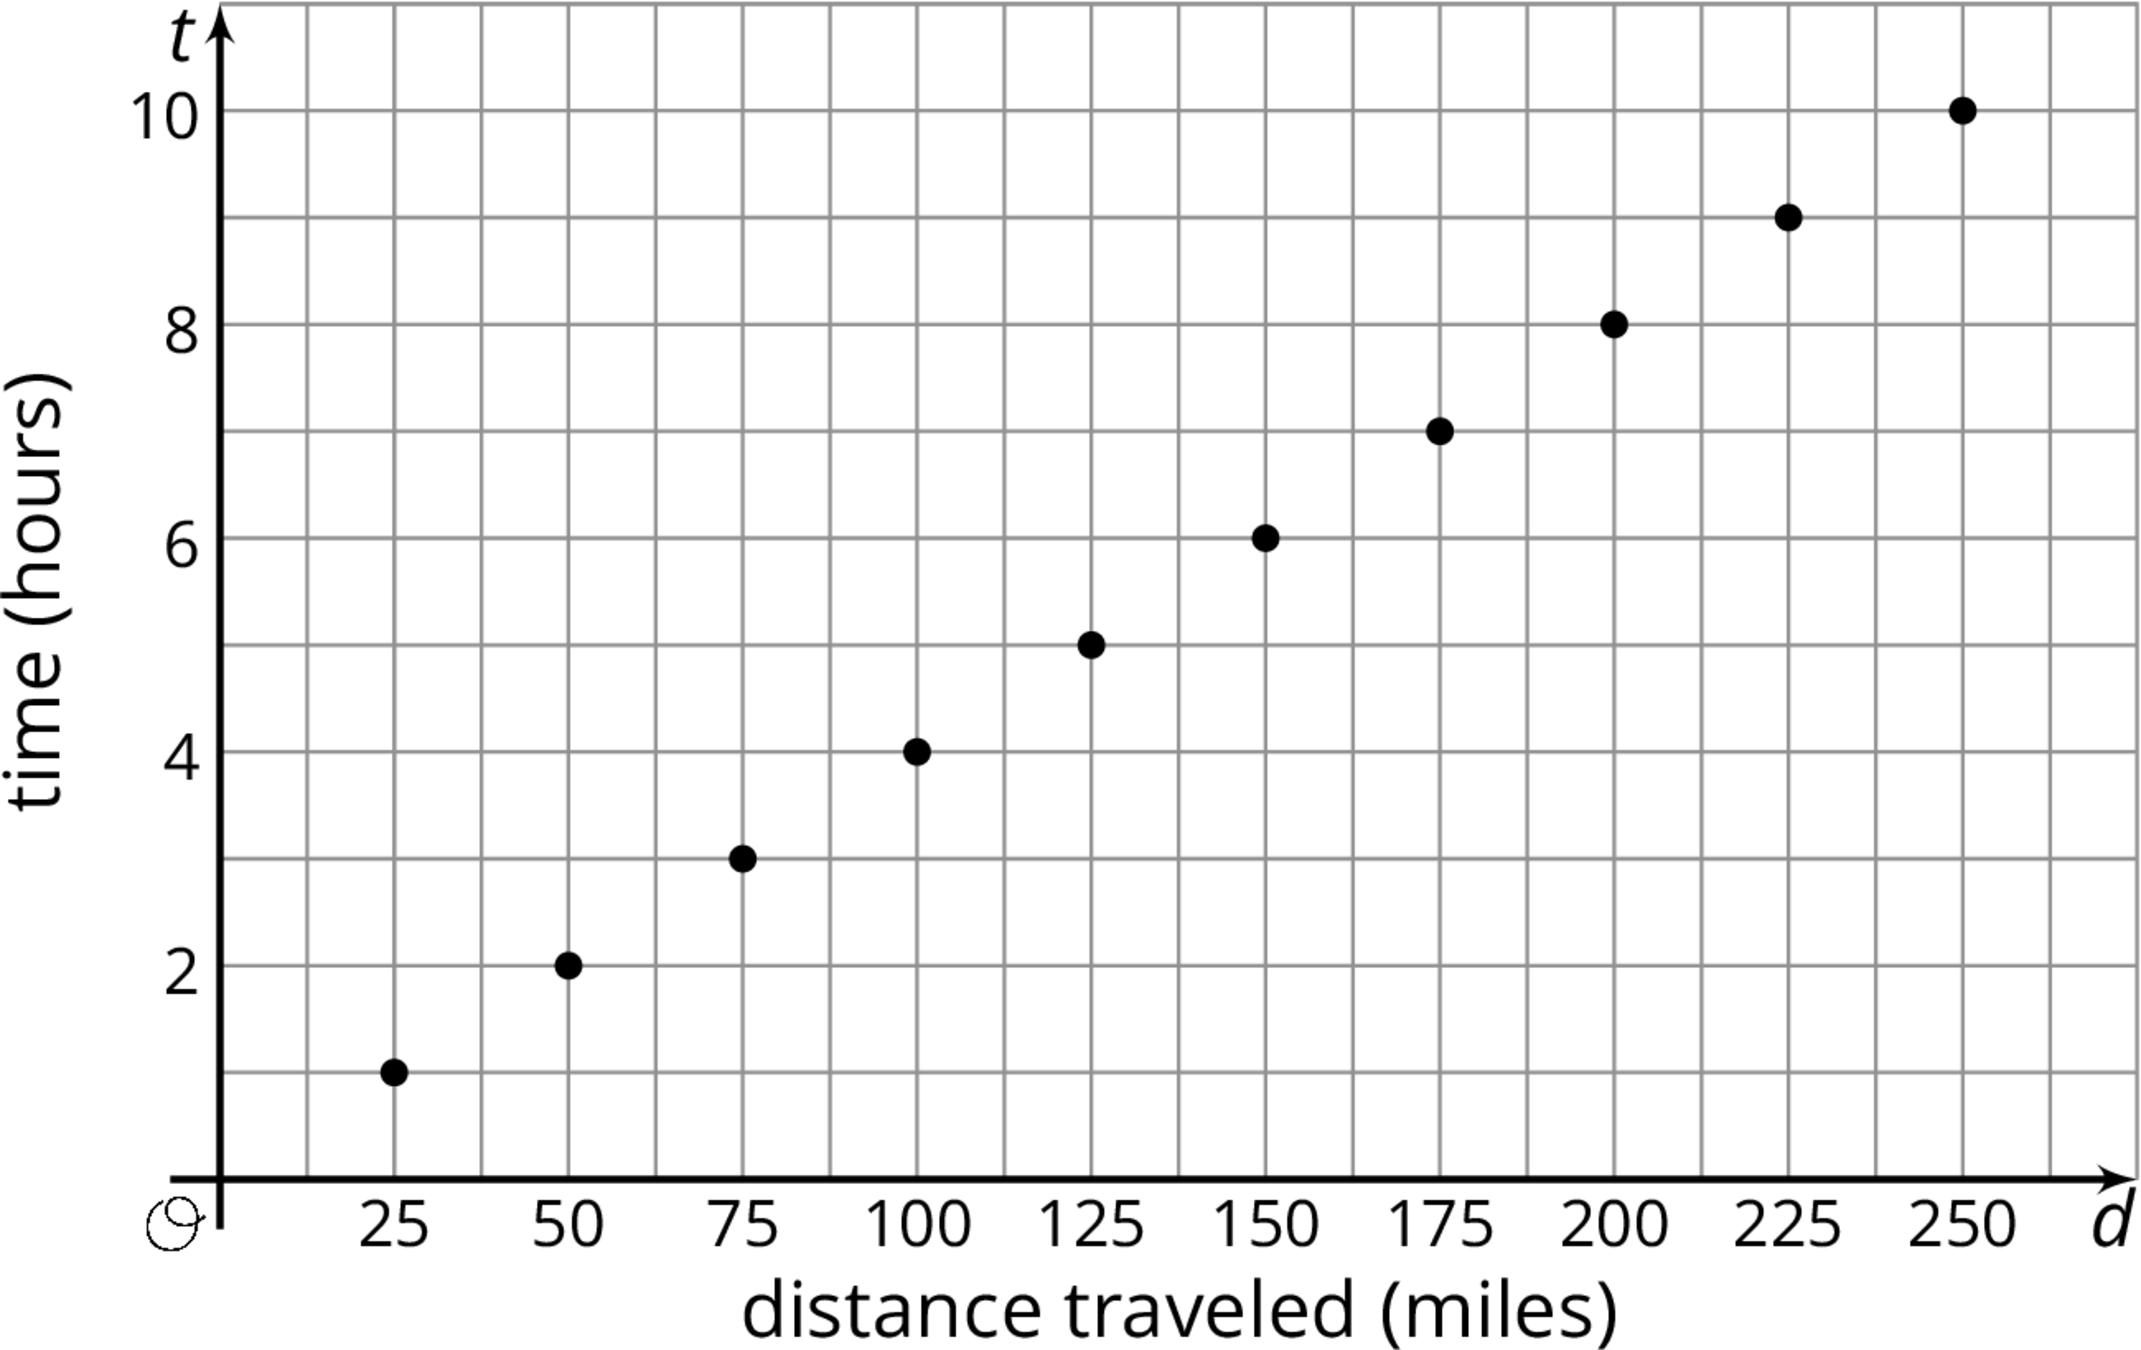 "A graph of 10 points plotted on the coordinate plane with the origin labeled ""O"". The horizontal d axis is labeled ""distance traveled in miles"". The numbers 0 through 250, in increments of 25, are indicated, and there are vertical gridlines midway between. The vertical t axis is labeled ""time in hours"". The numbers 0 through 10, in increments of 2, are indicated, and there are horizontal gridlines midway between. The data are as follows: 25 comma 1. 50 comma 2. 75 comma 3. 100 comma 4. 125 comma 5. 150 comma 6. 175 comma 7. 200 comma 8. 225 comma 9. 250 comma 10."